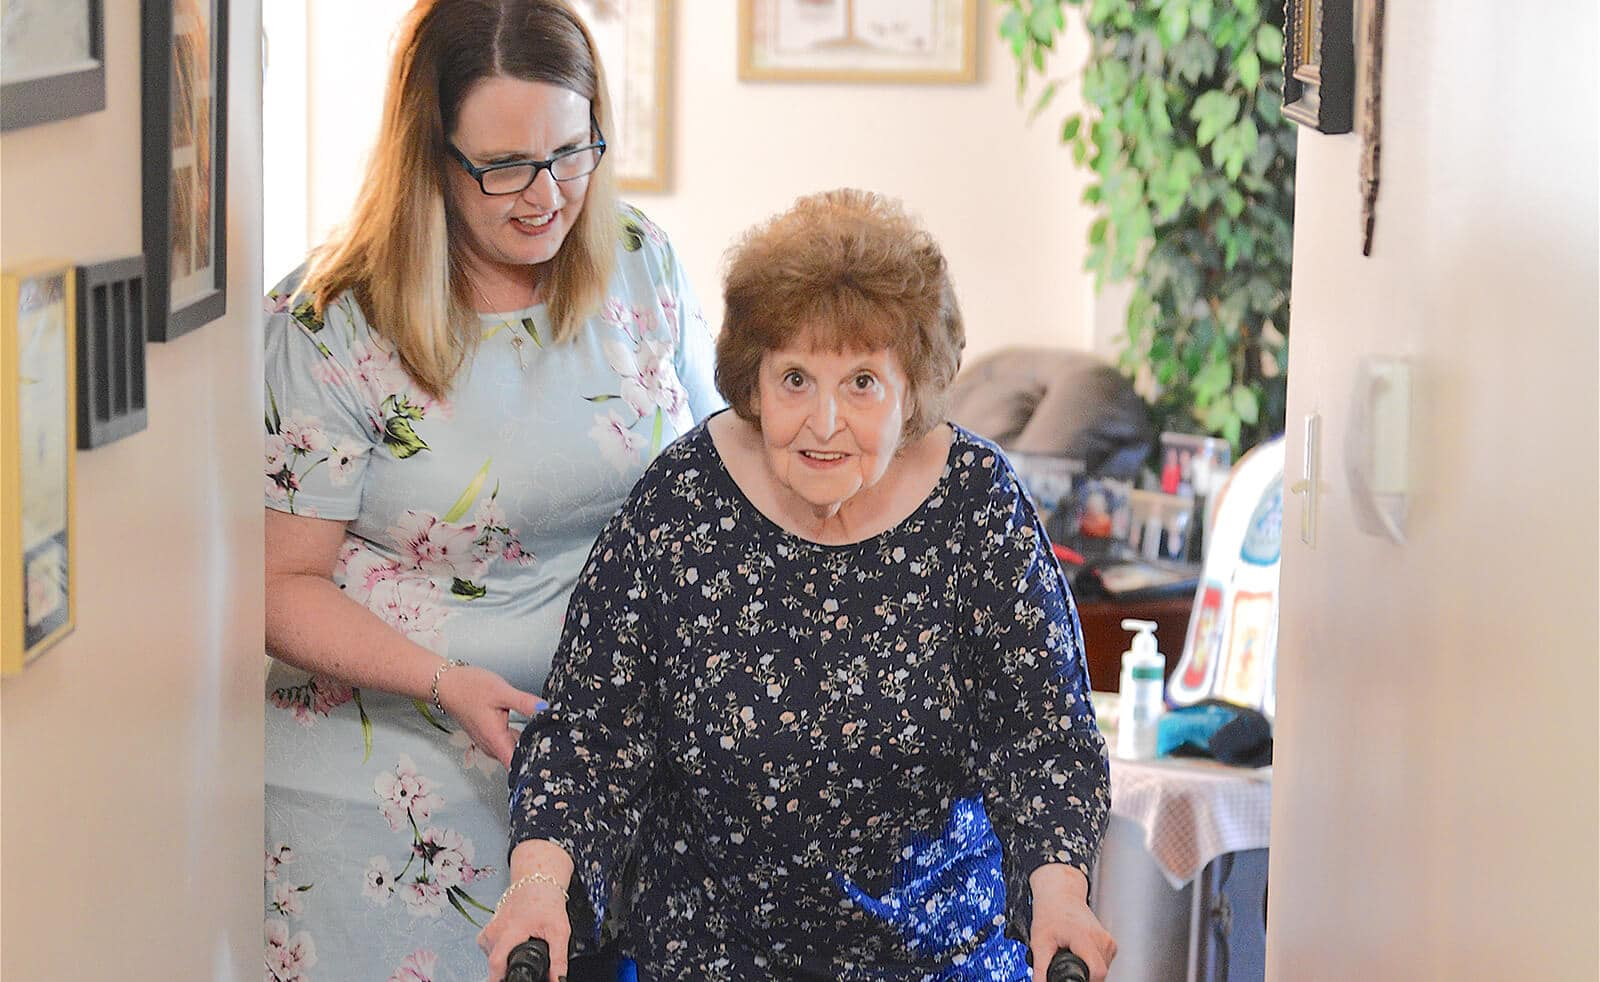 Caregiver helping older lady in her home